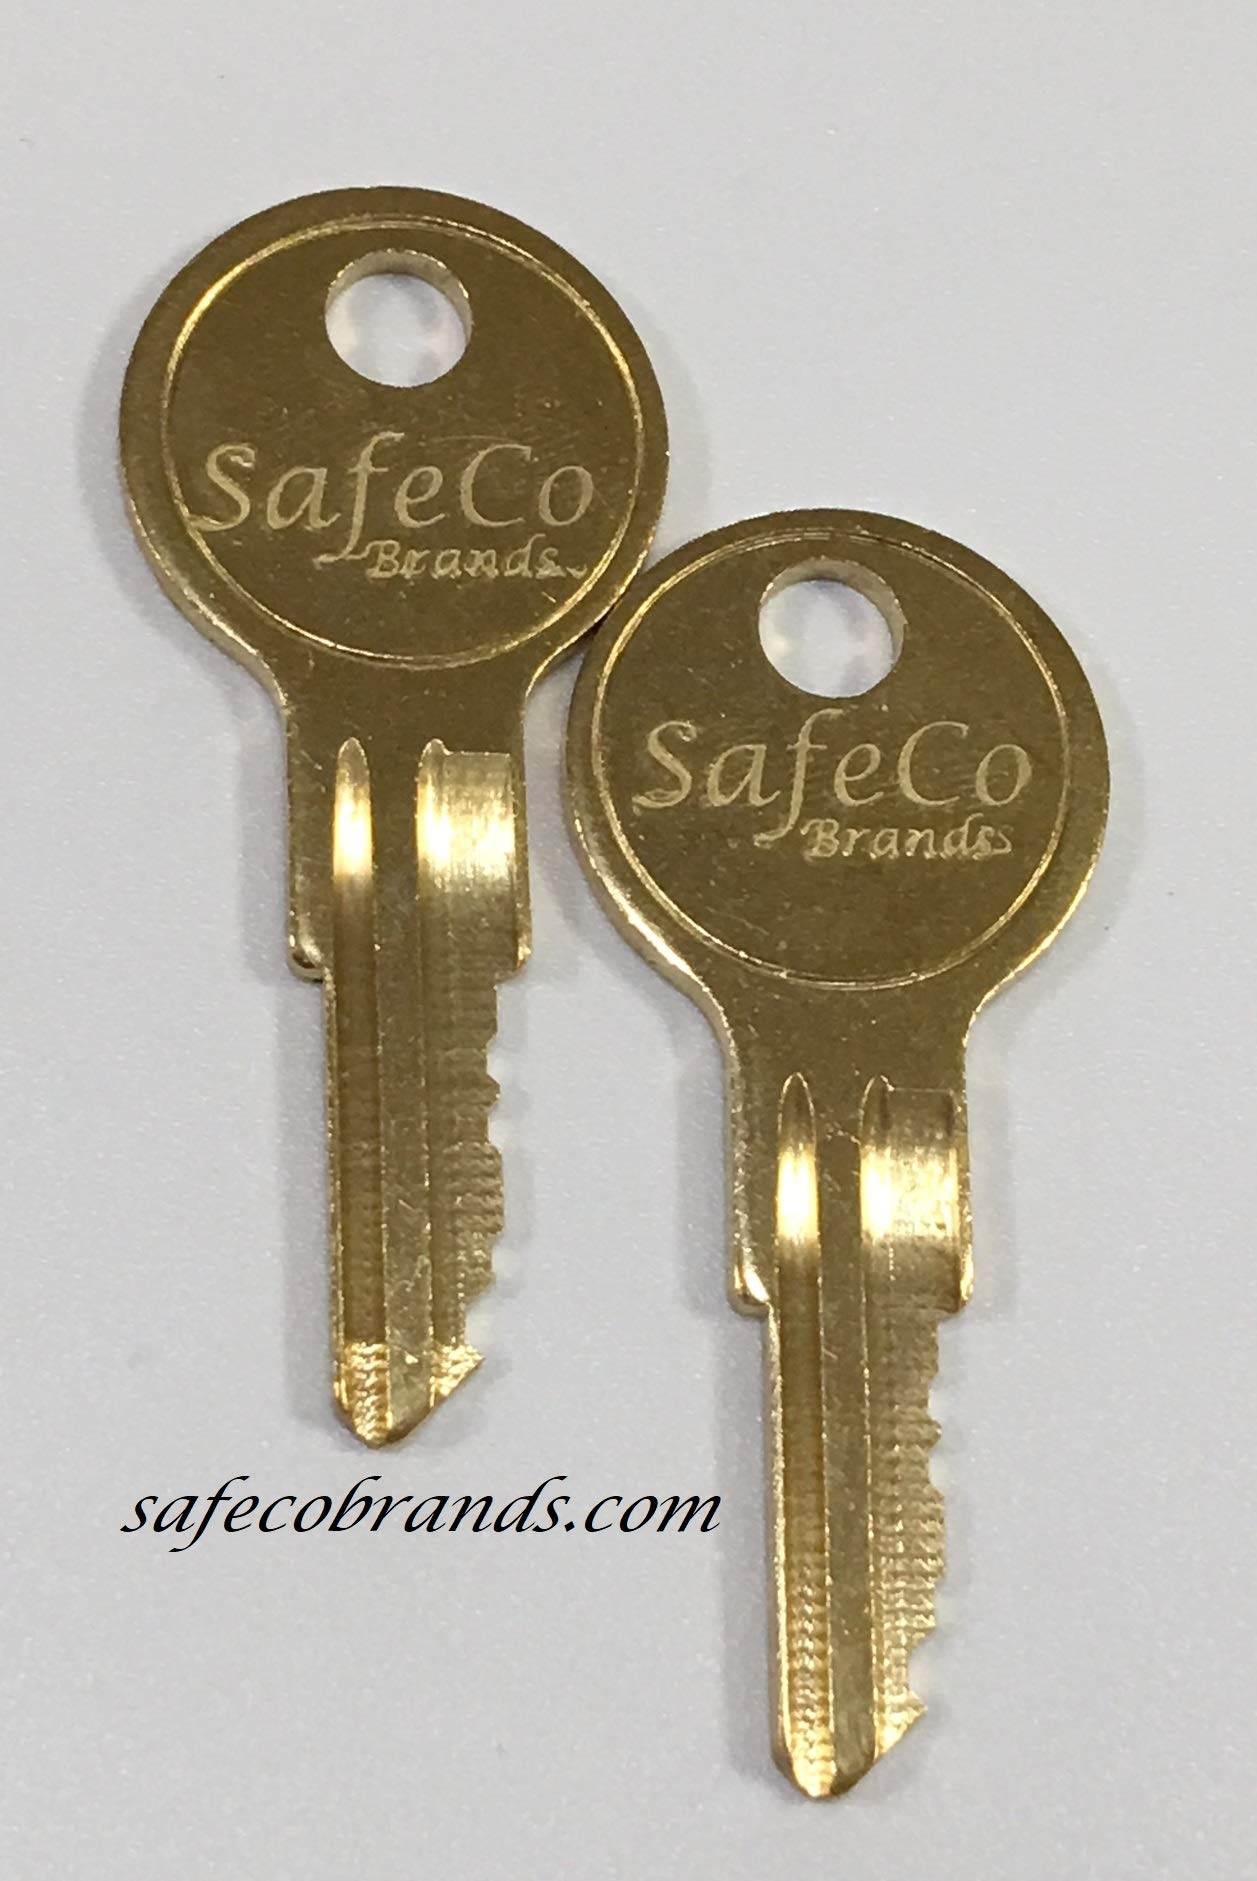 SafeCo Brands Replacement Keys for Better Built Truck Tool Boxes with Key Codes H01 thru H10 2-Keys (H05)